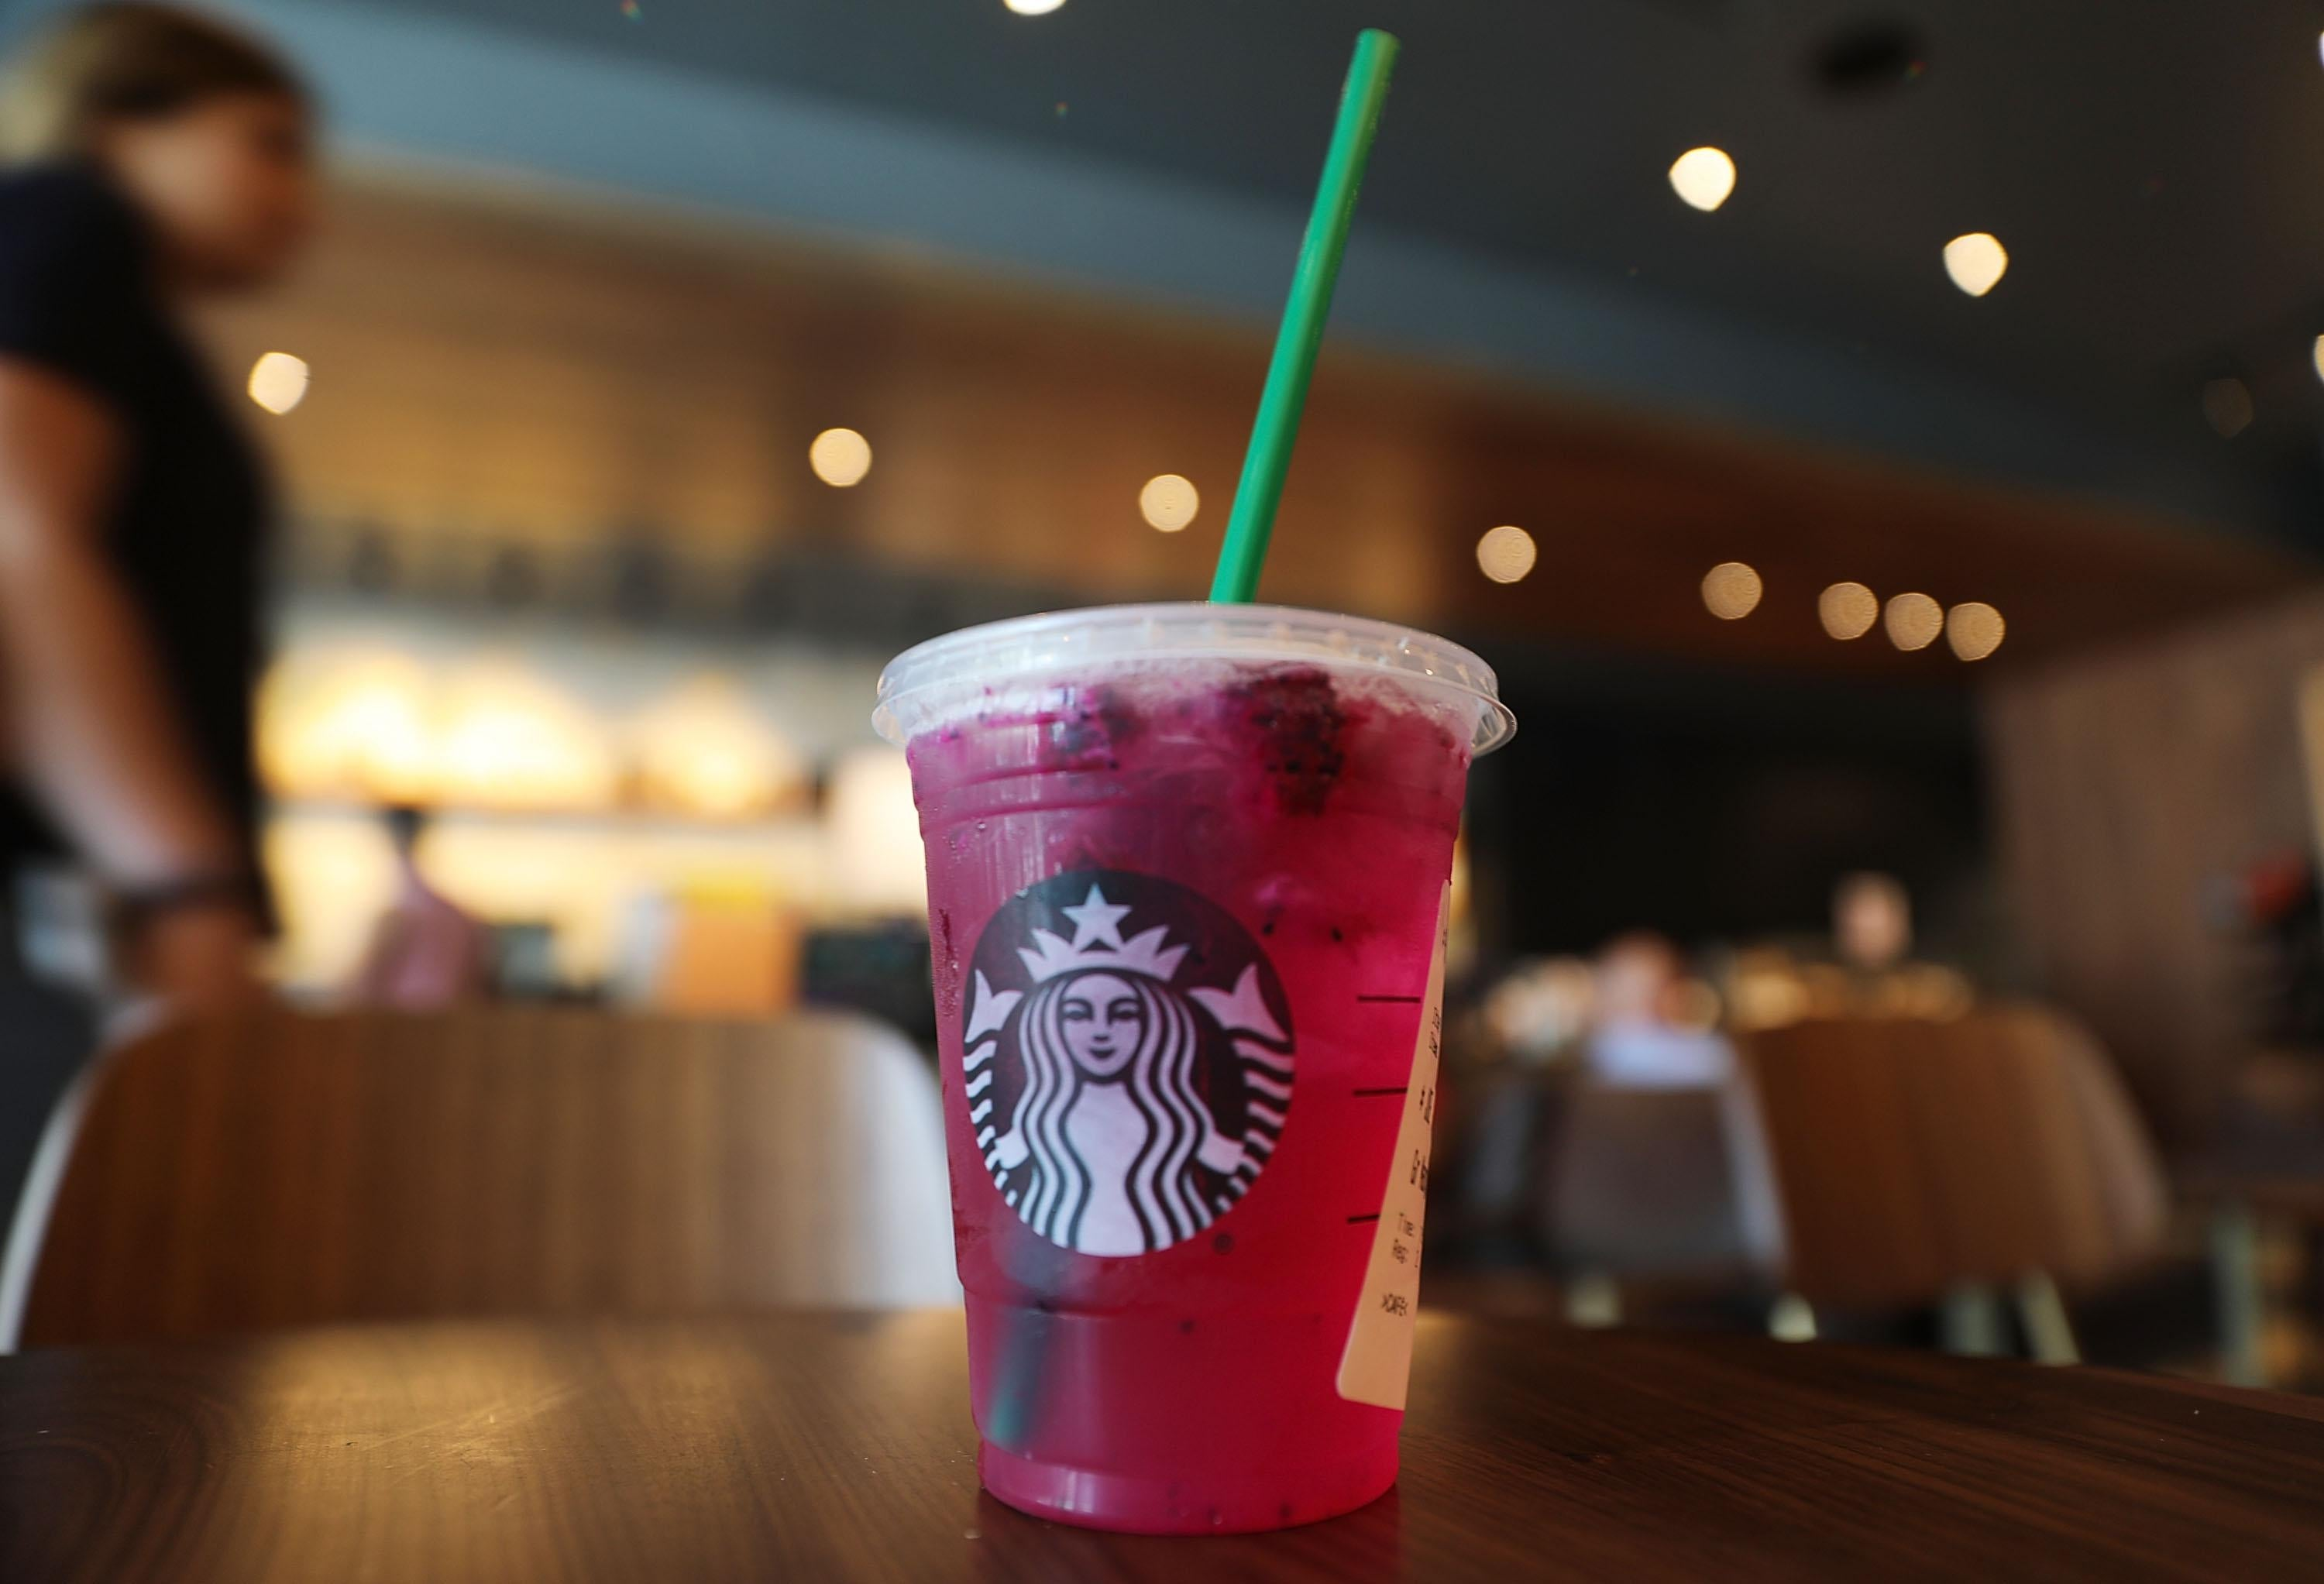 A plastic straw is seen in a pink Starbucks drink.